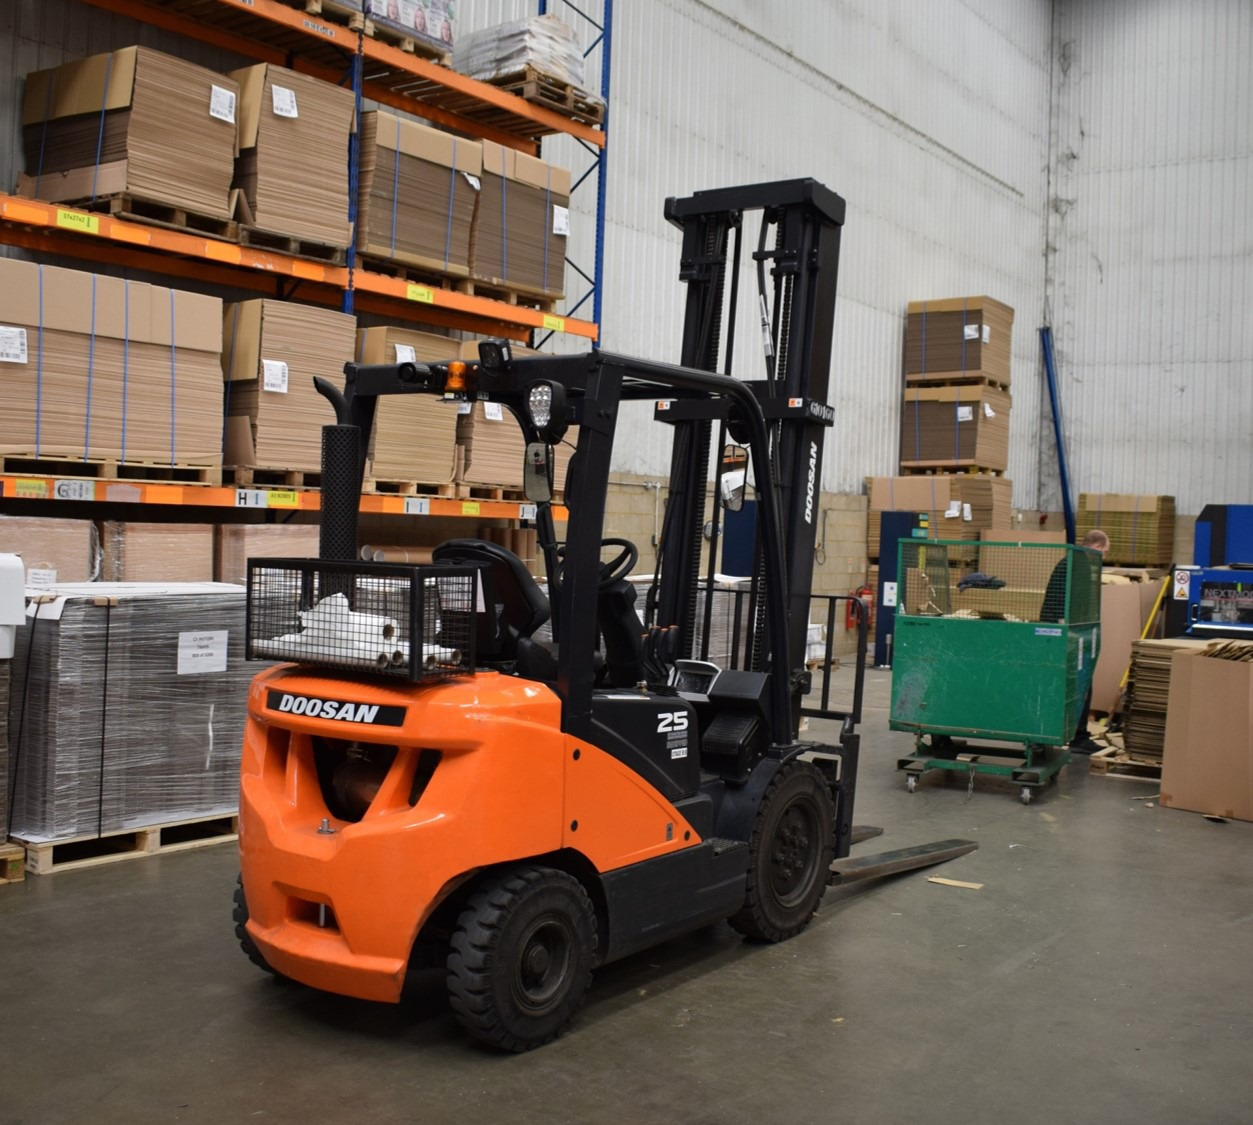 Doosan 3-wheel electric forklift truck